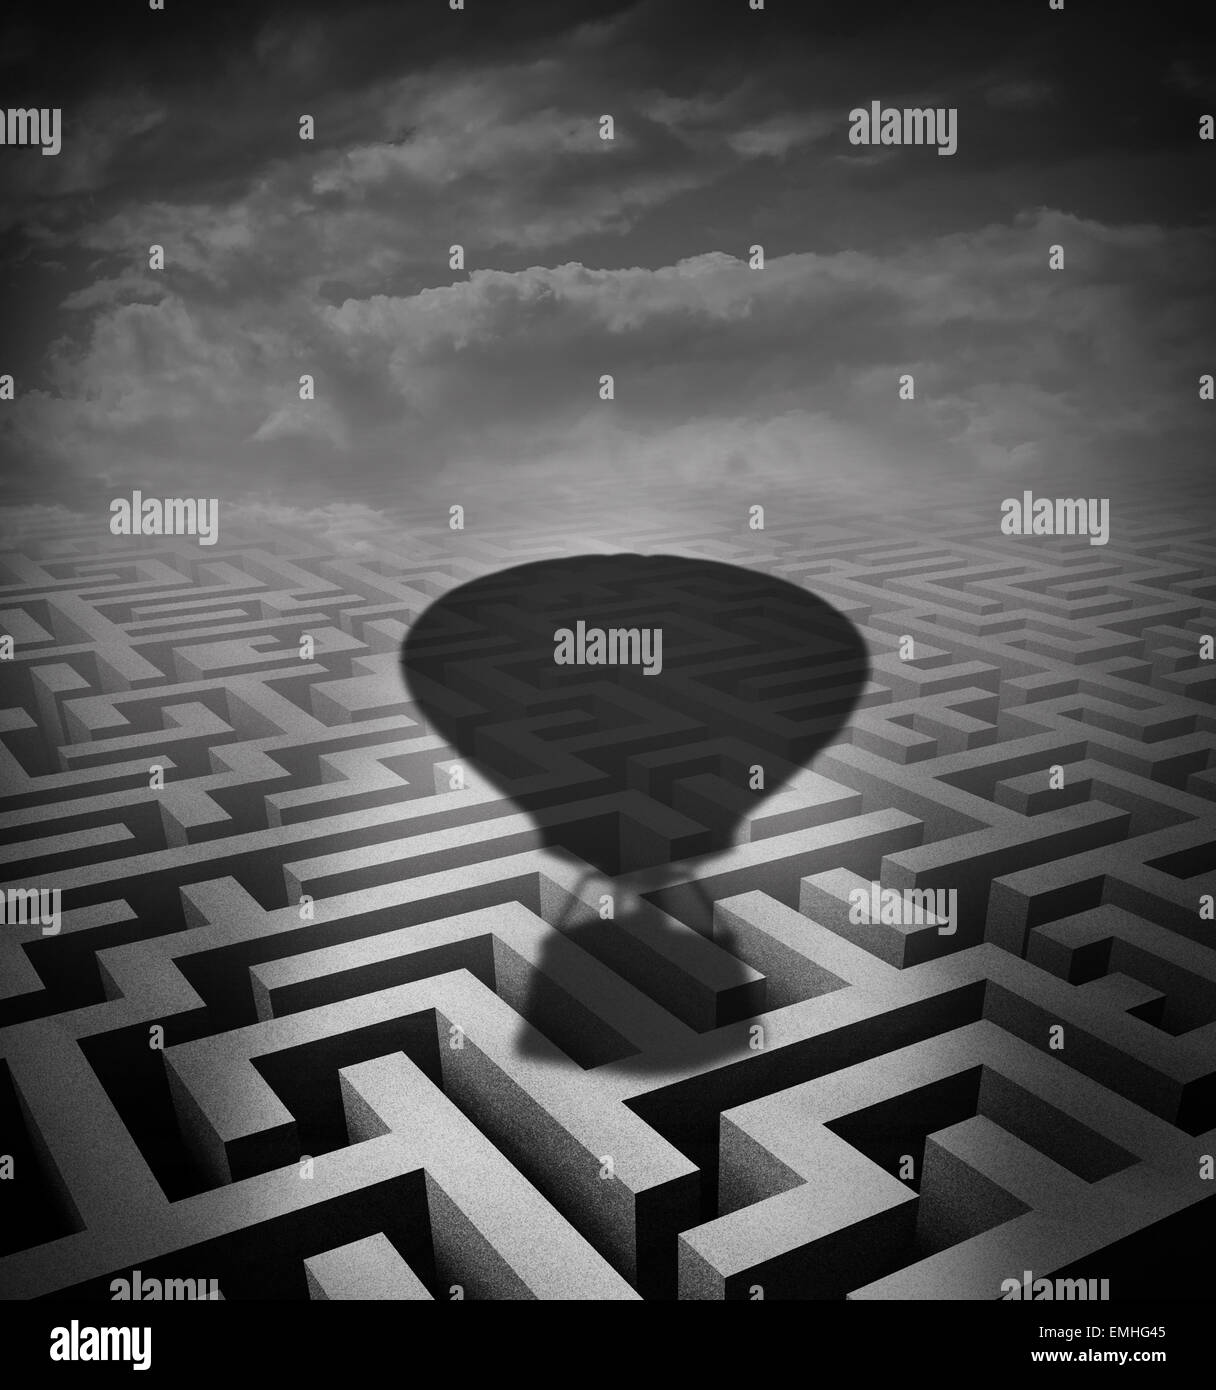 Overcome obstacles concept as a hot air balloon cast shadow on a maze or labyrinth as a motivational business metaphor - Stock Image